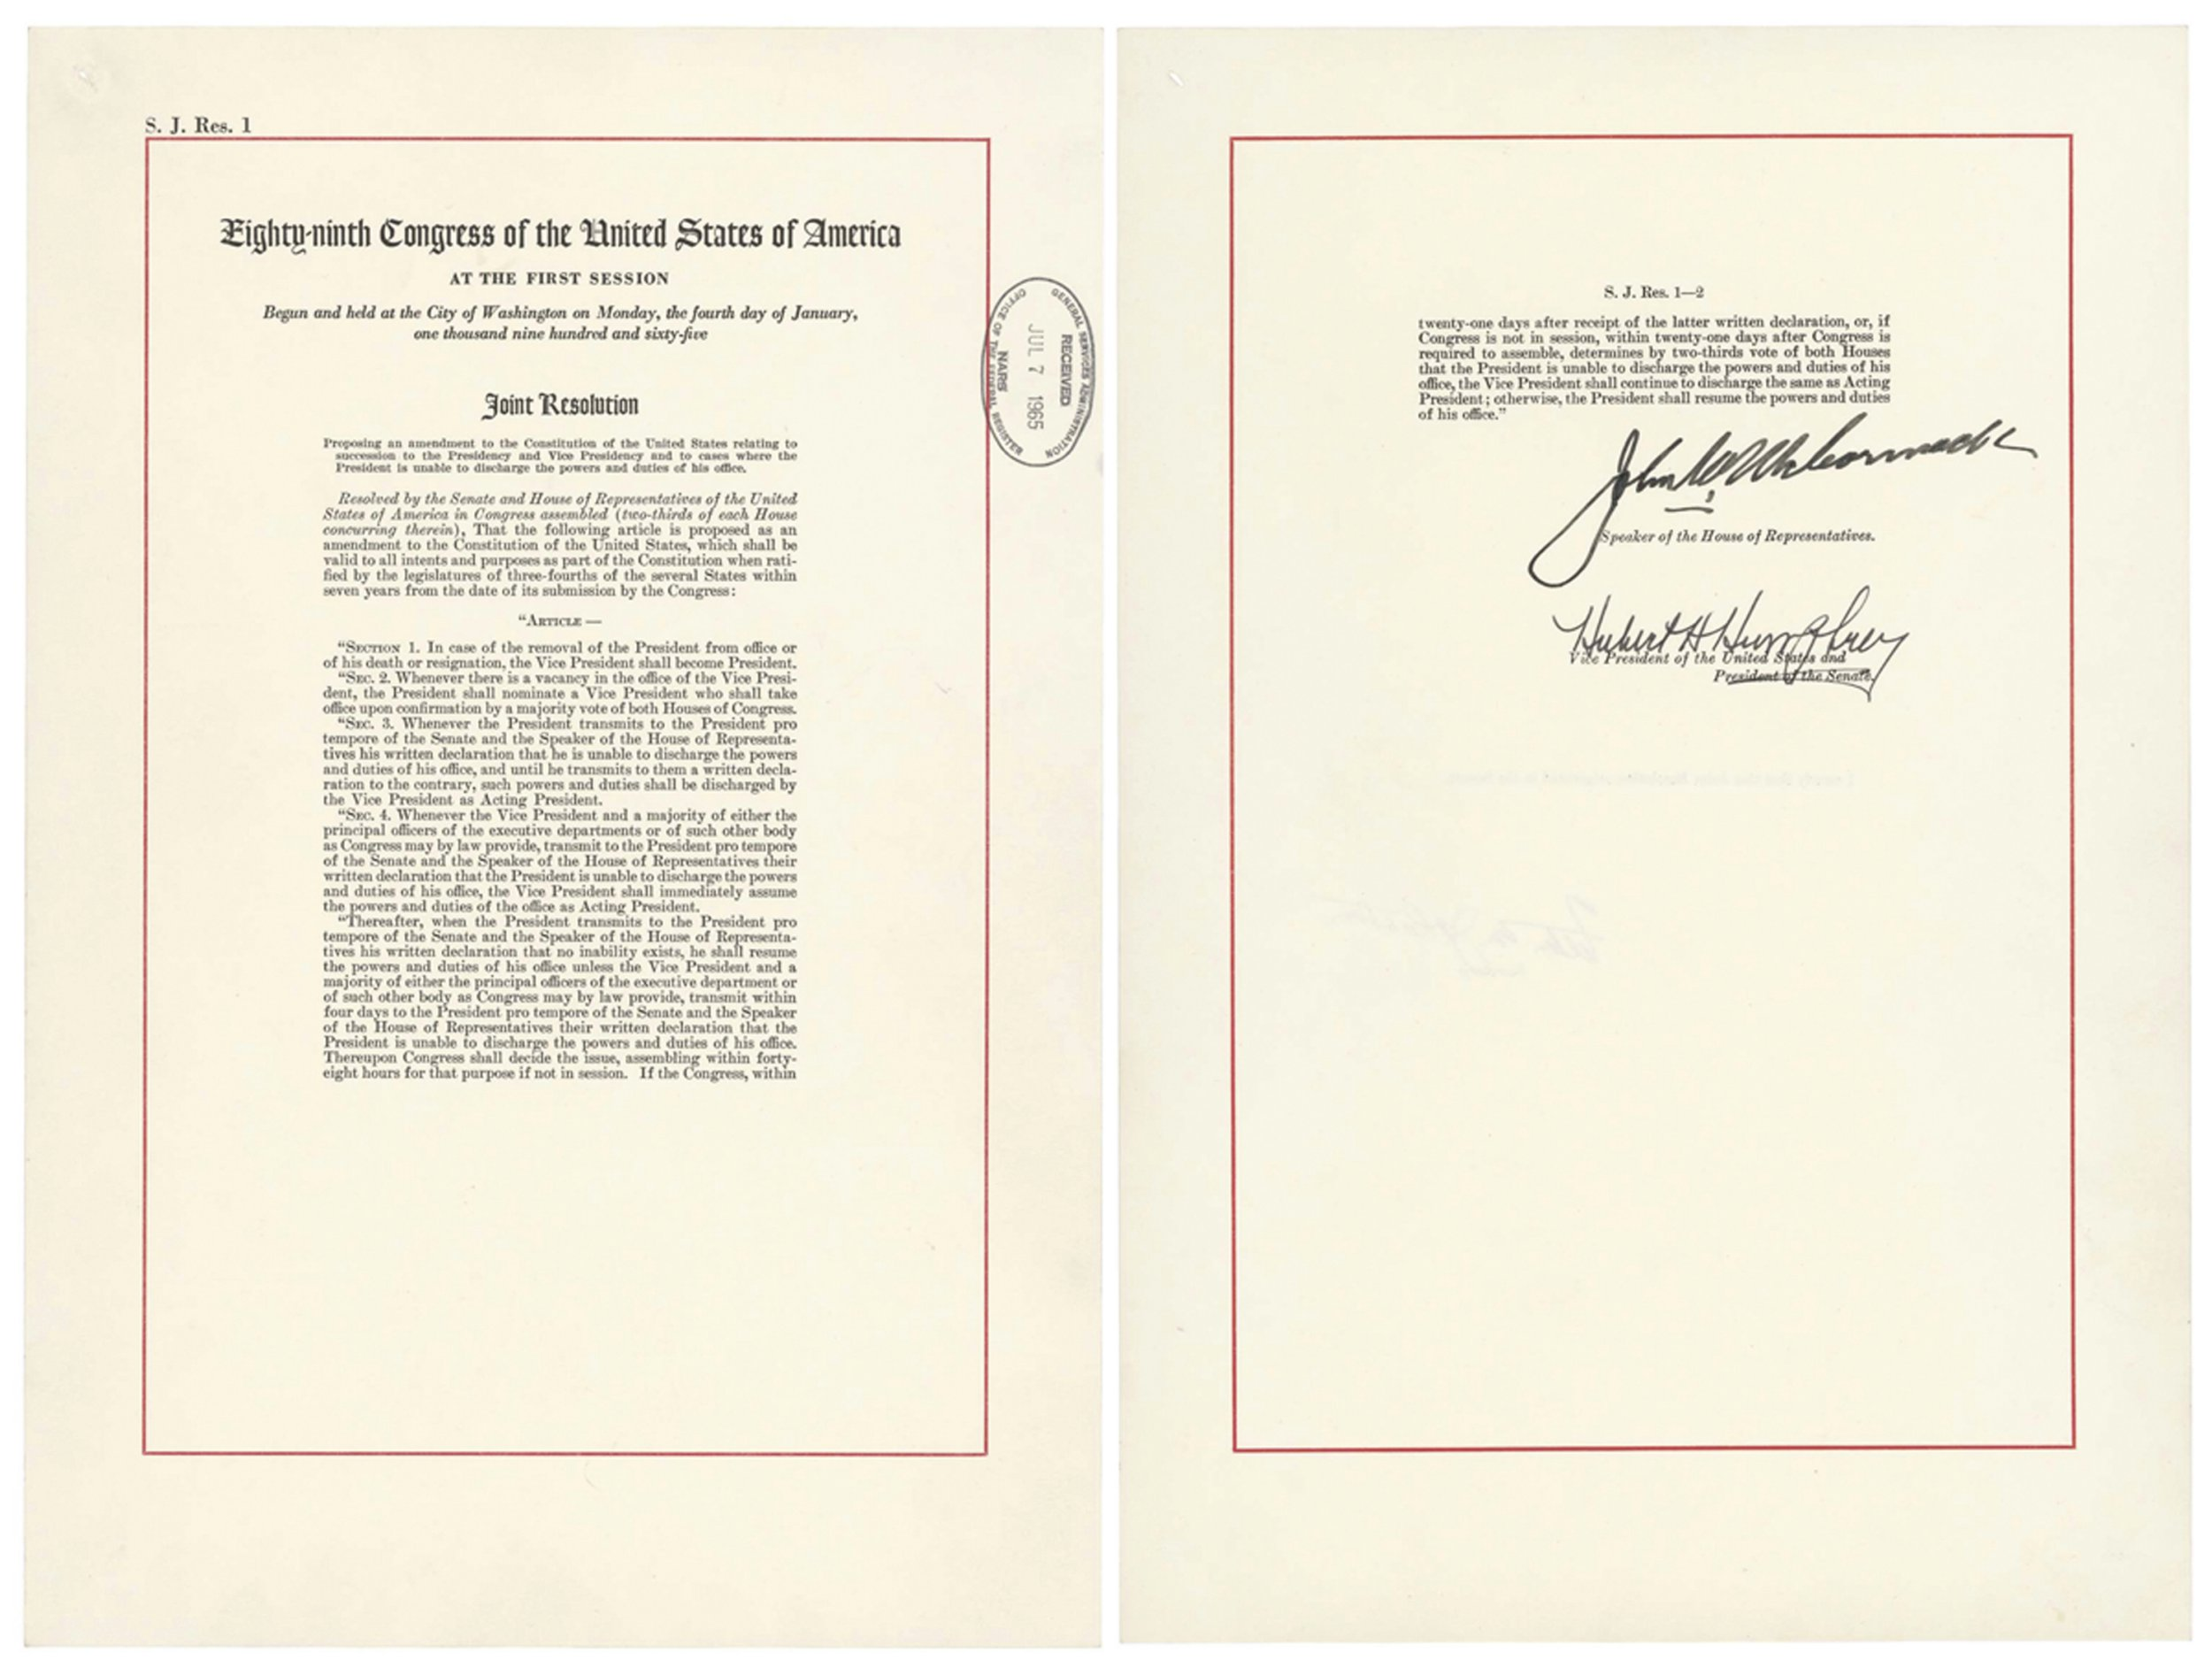 """This image shows a copy of the 25th Amendment, which allows the vice president to take over if the commander in chief is """"unable to discharge the powers and duties of his office."""" A senior administration official referenced the amendment on Wednesday, Sept. 5, 2018, in an unsigned opinion piece published in The New York Times which described President Donald Trump's """"amorality"""" and """"impetuous"""" leadership style. (National Archives via AP)"""